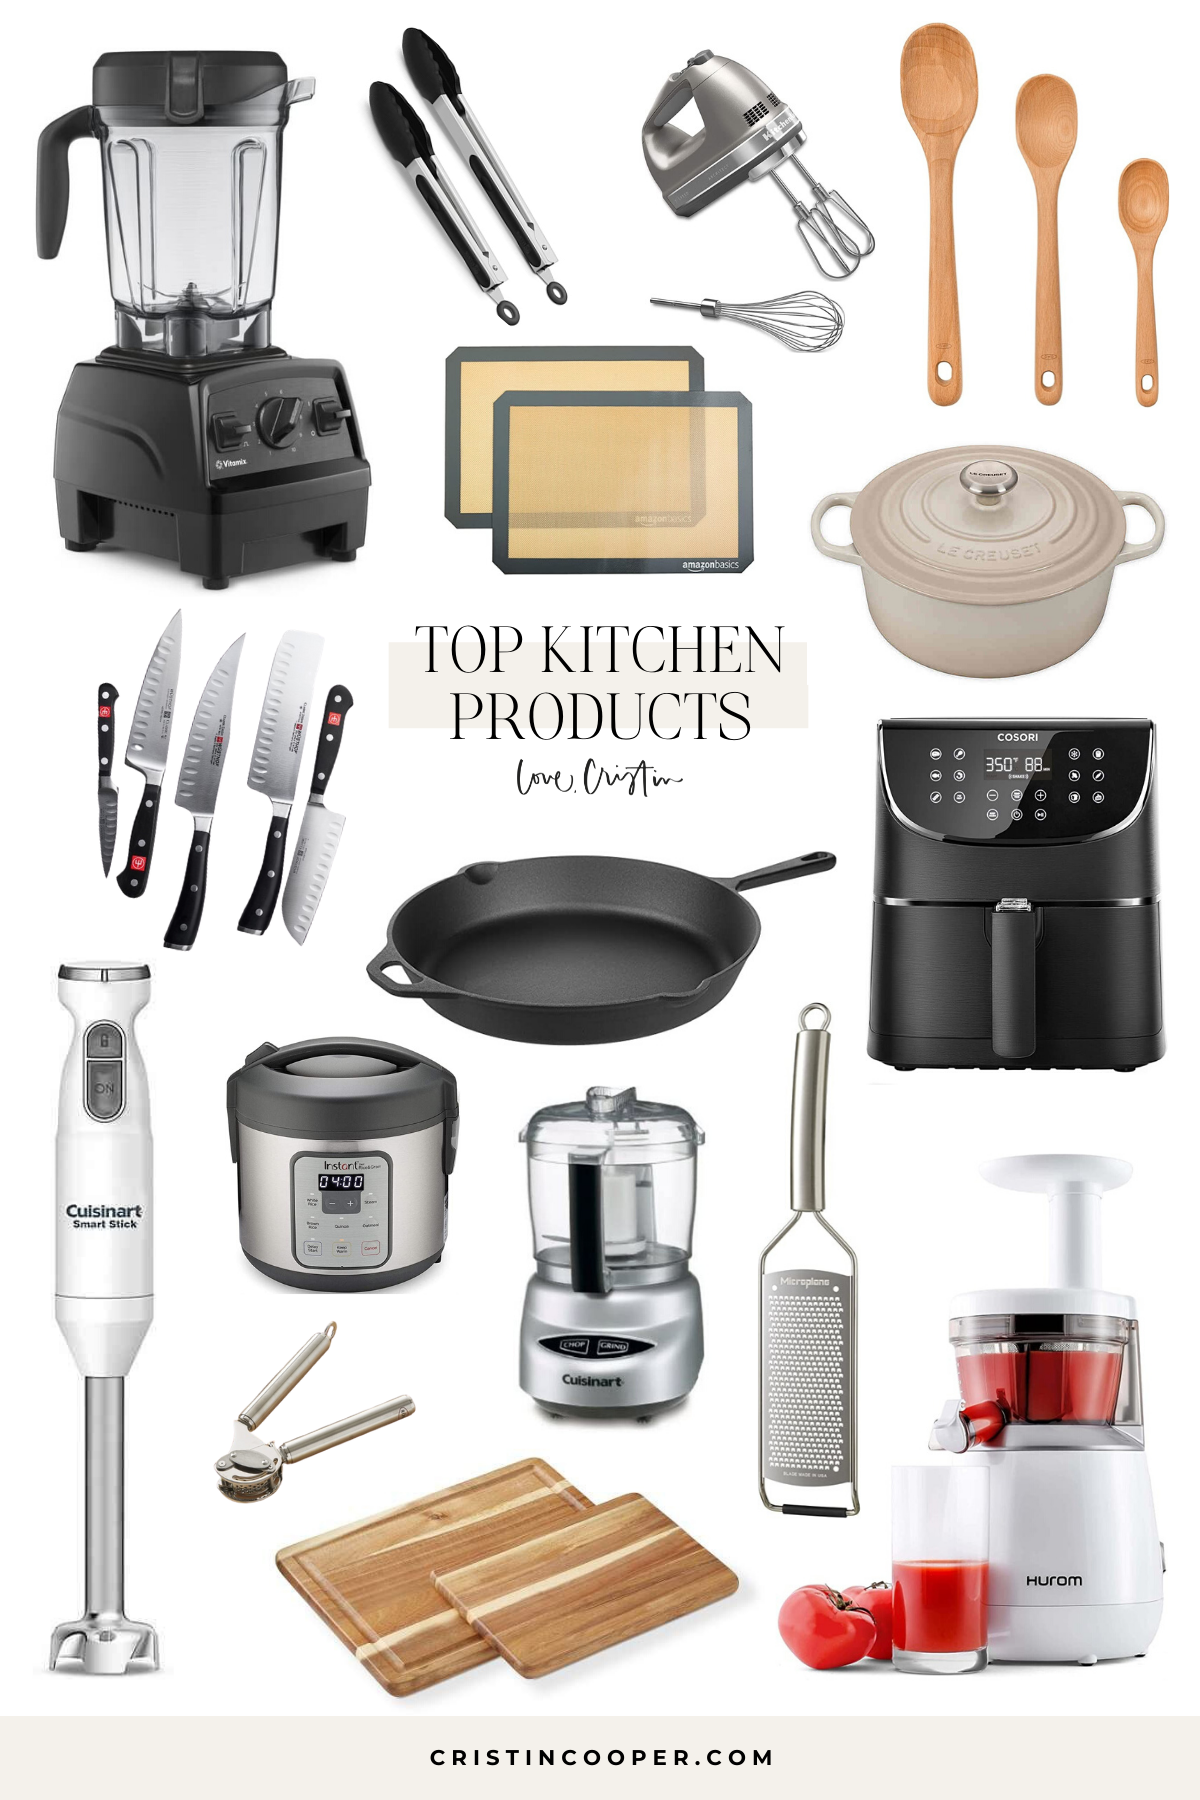 List of kitchen essentials from Cristin Cooper.